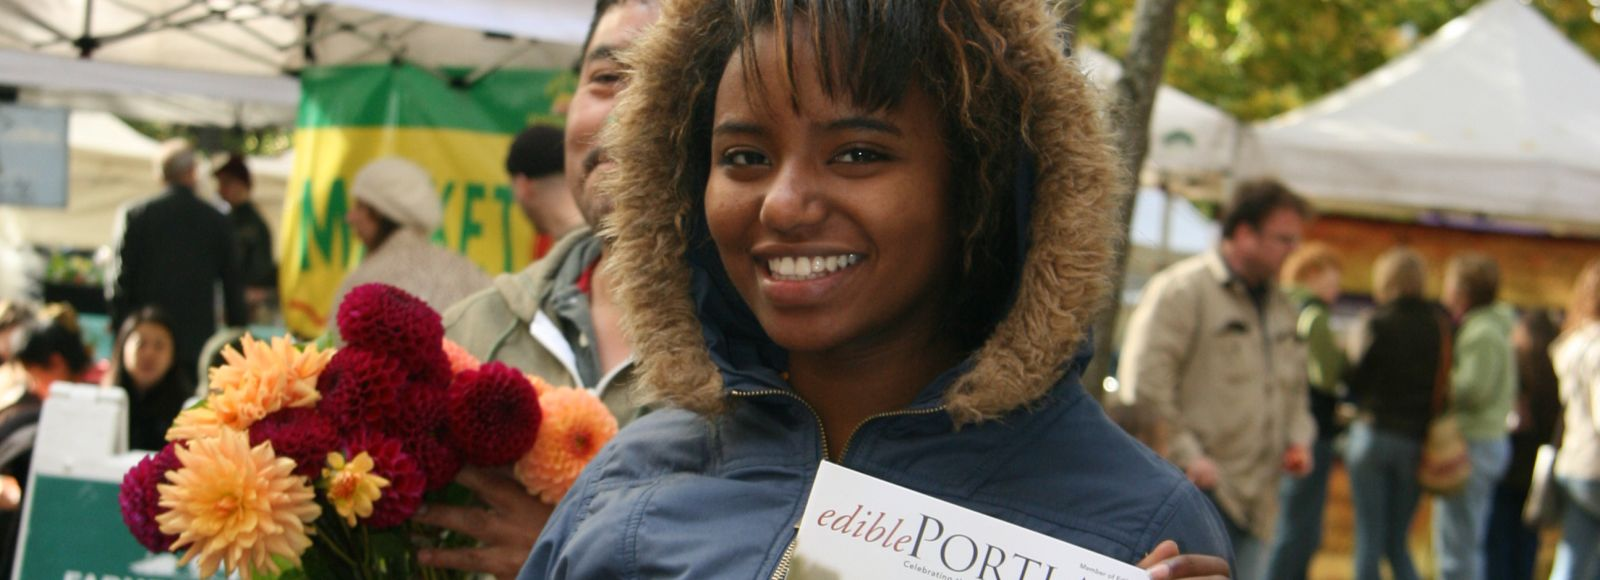 Student displays cover of Edible Portland magazine at farmers market